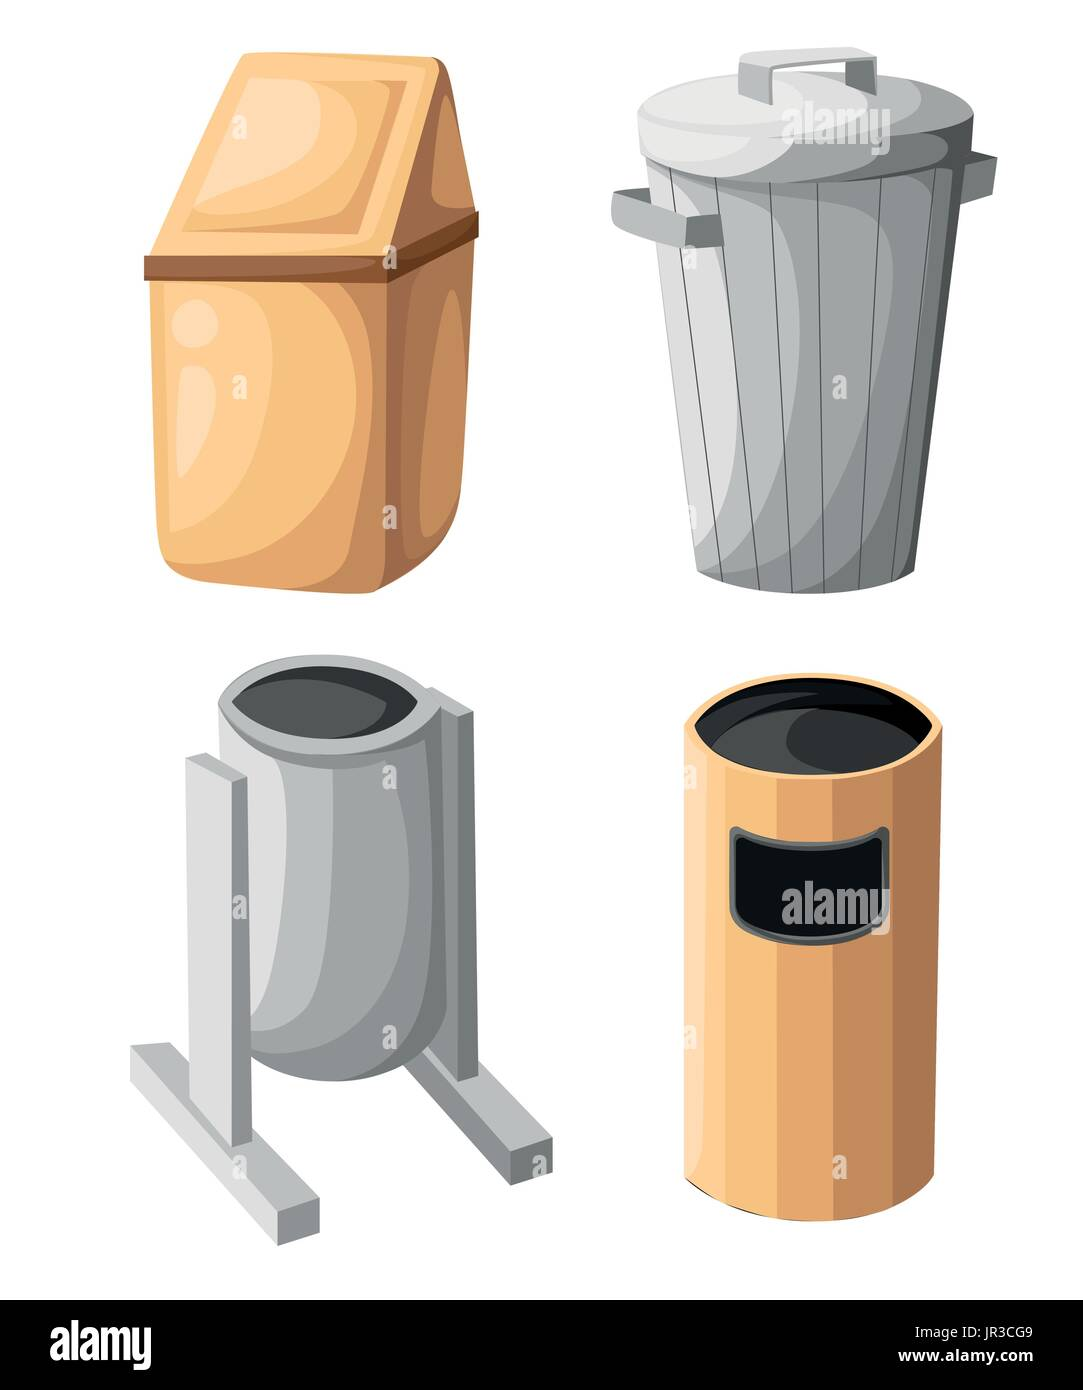 Garbage trash bin icon isolated. Vector illustration. Flat style.waste paper basket. Waste bin.Garbage bin.Garbage basket.Trash basket.Clean up.Cleani - Stock Vector